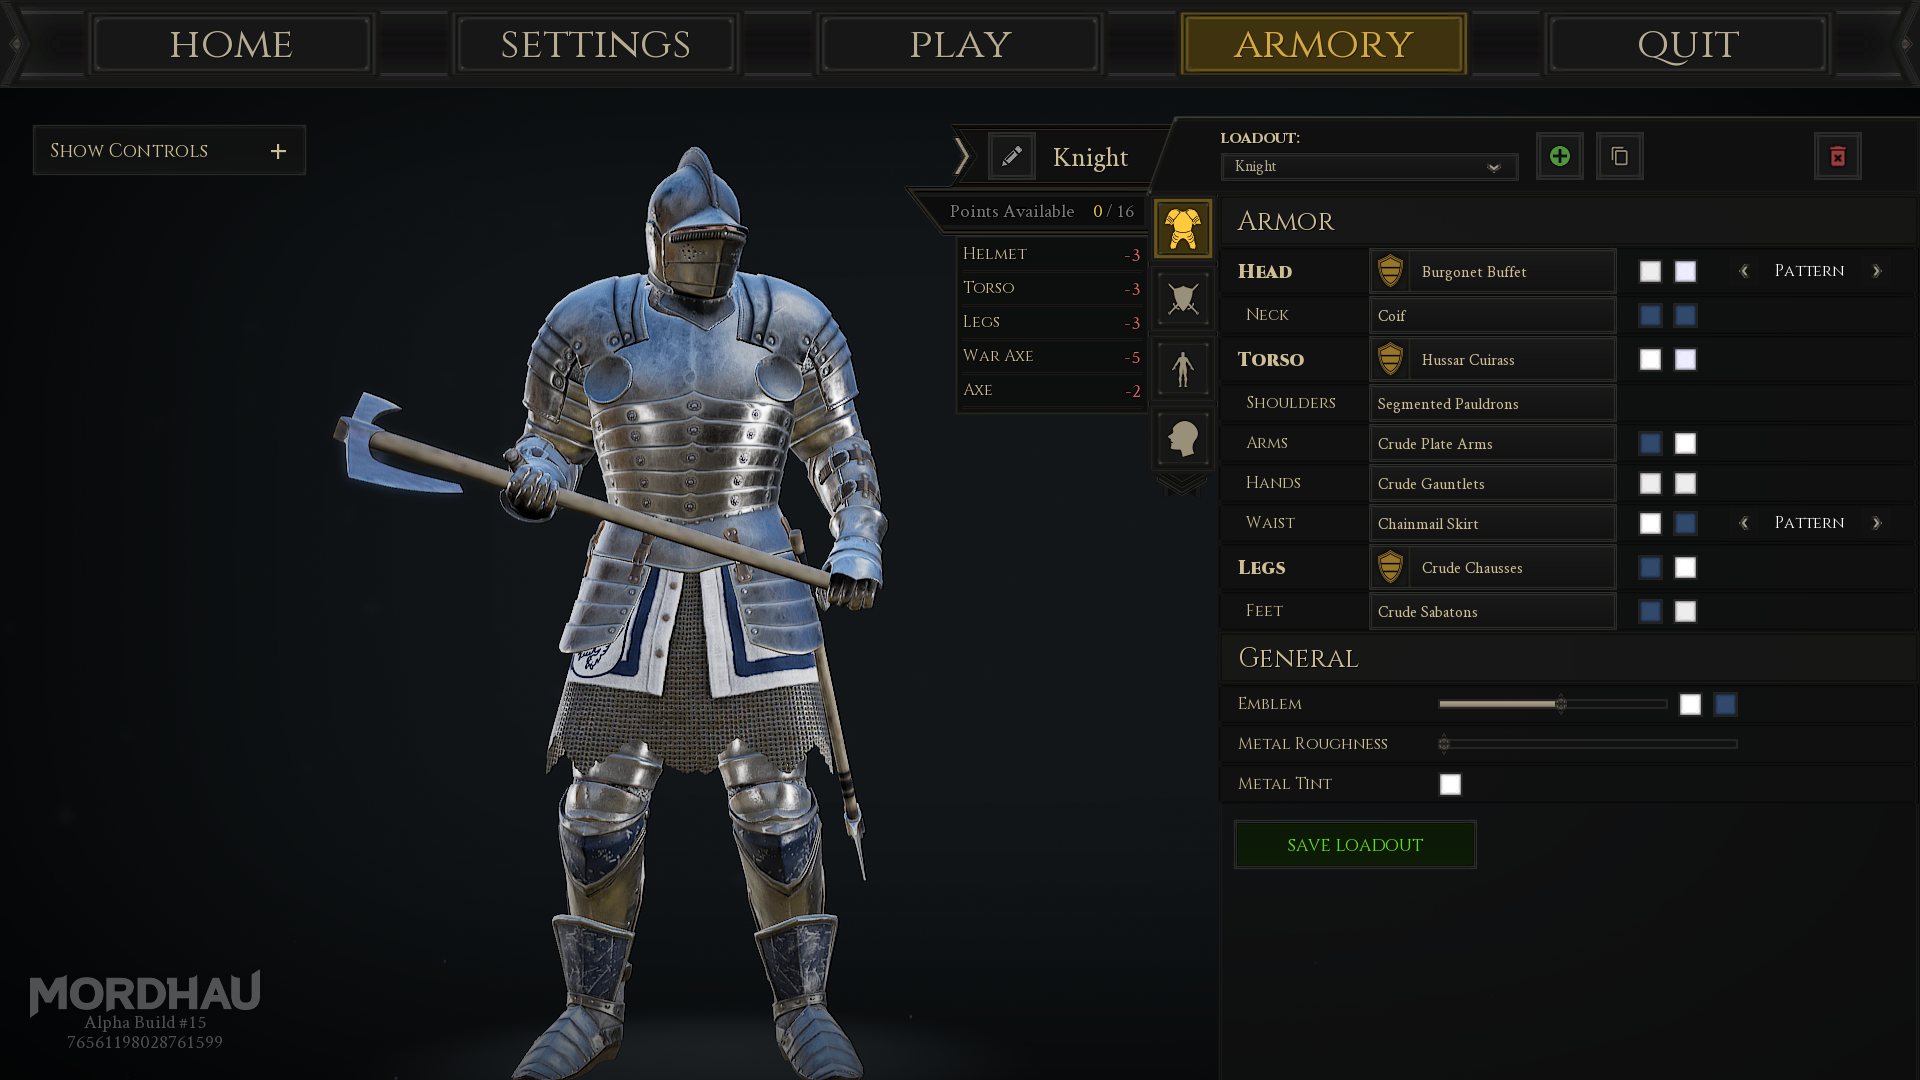 Knight in armory.png